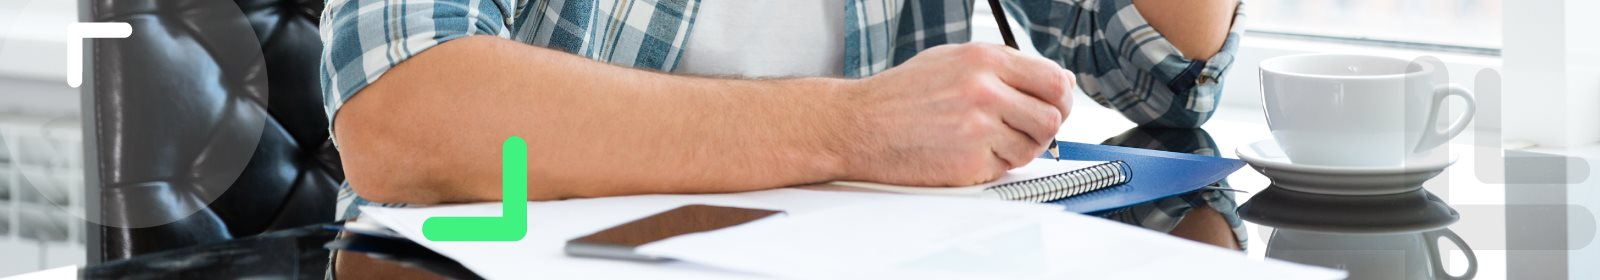 Renters guide: Terminating a lease agreement